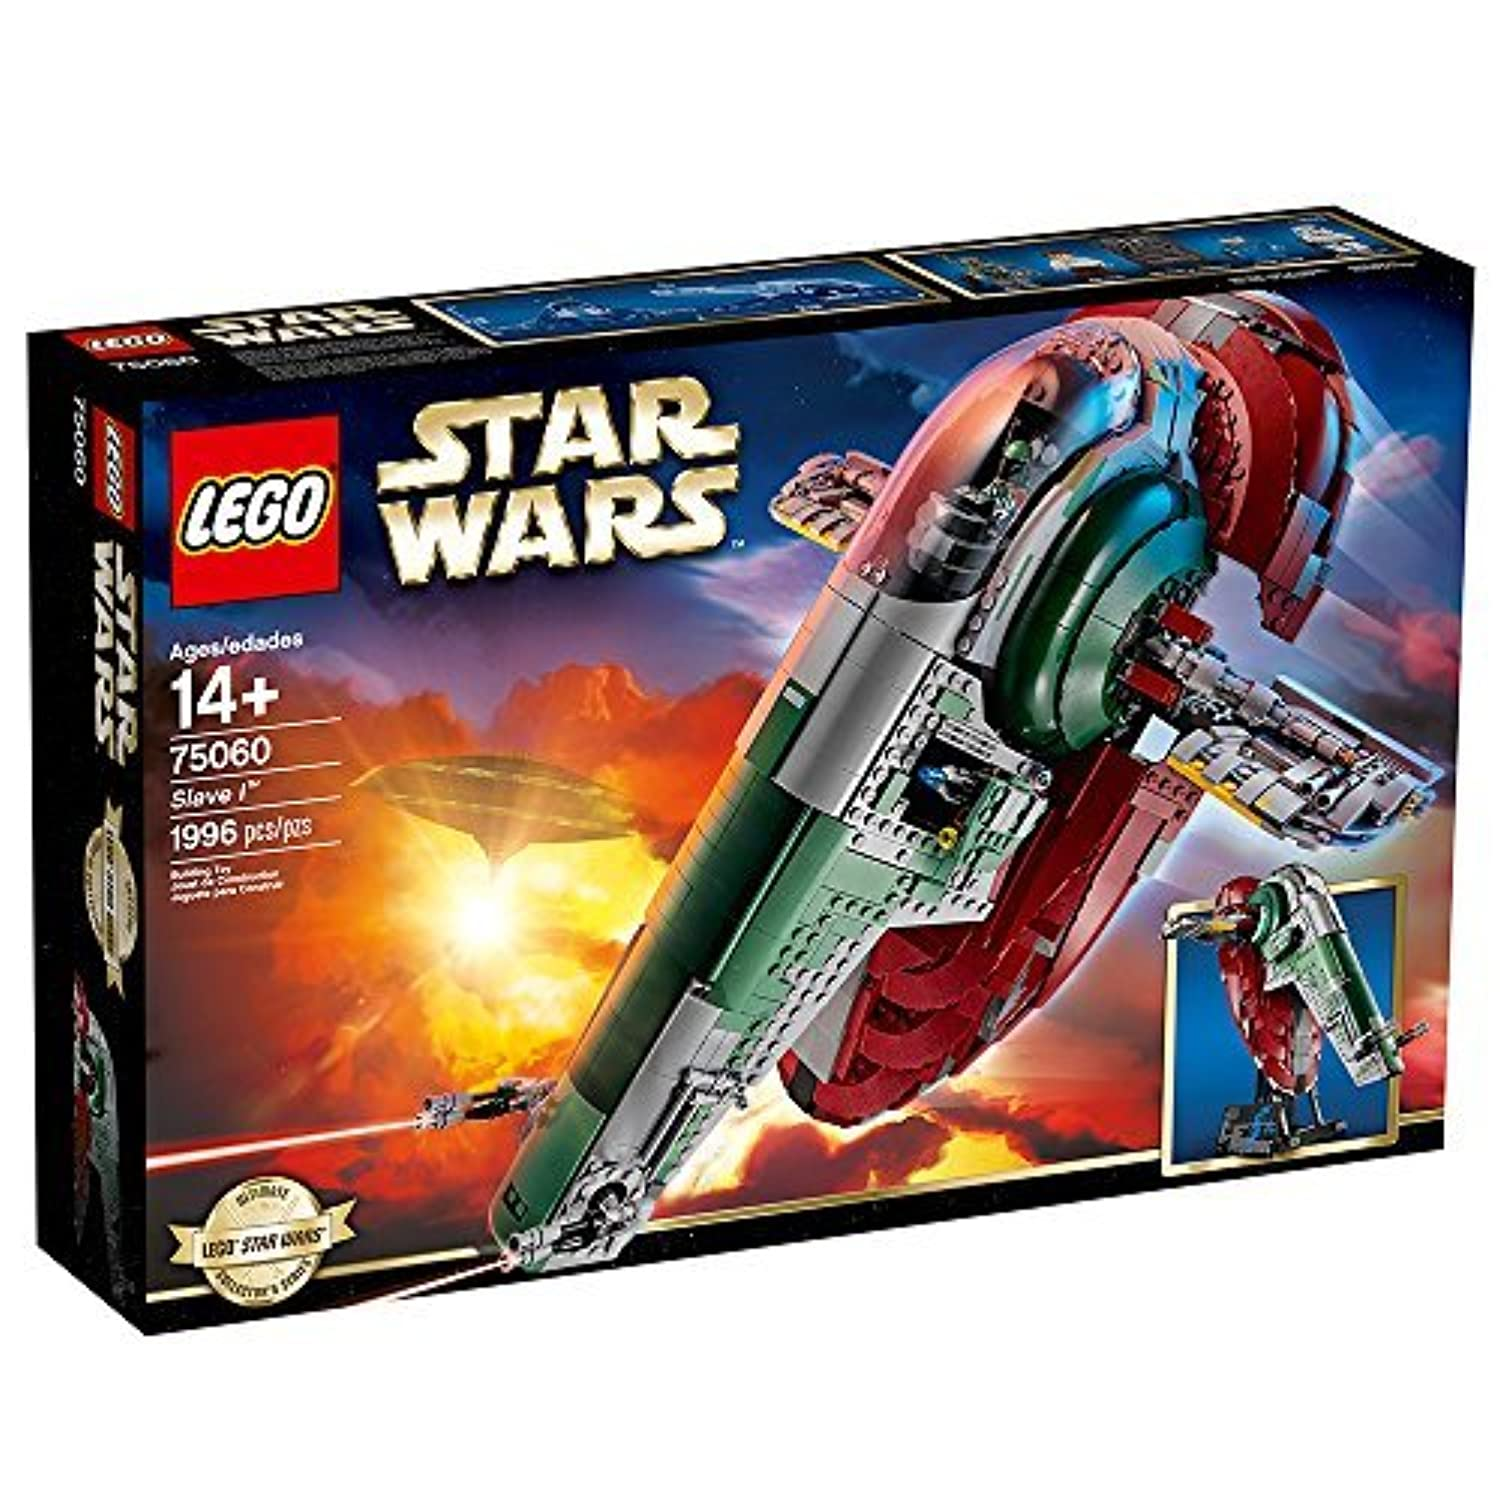 LEGO  Star wars 75060 Slave I Ultimate Collector Series レゴ スターウォーズ